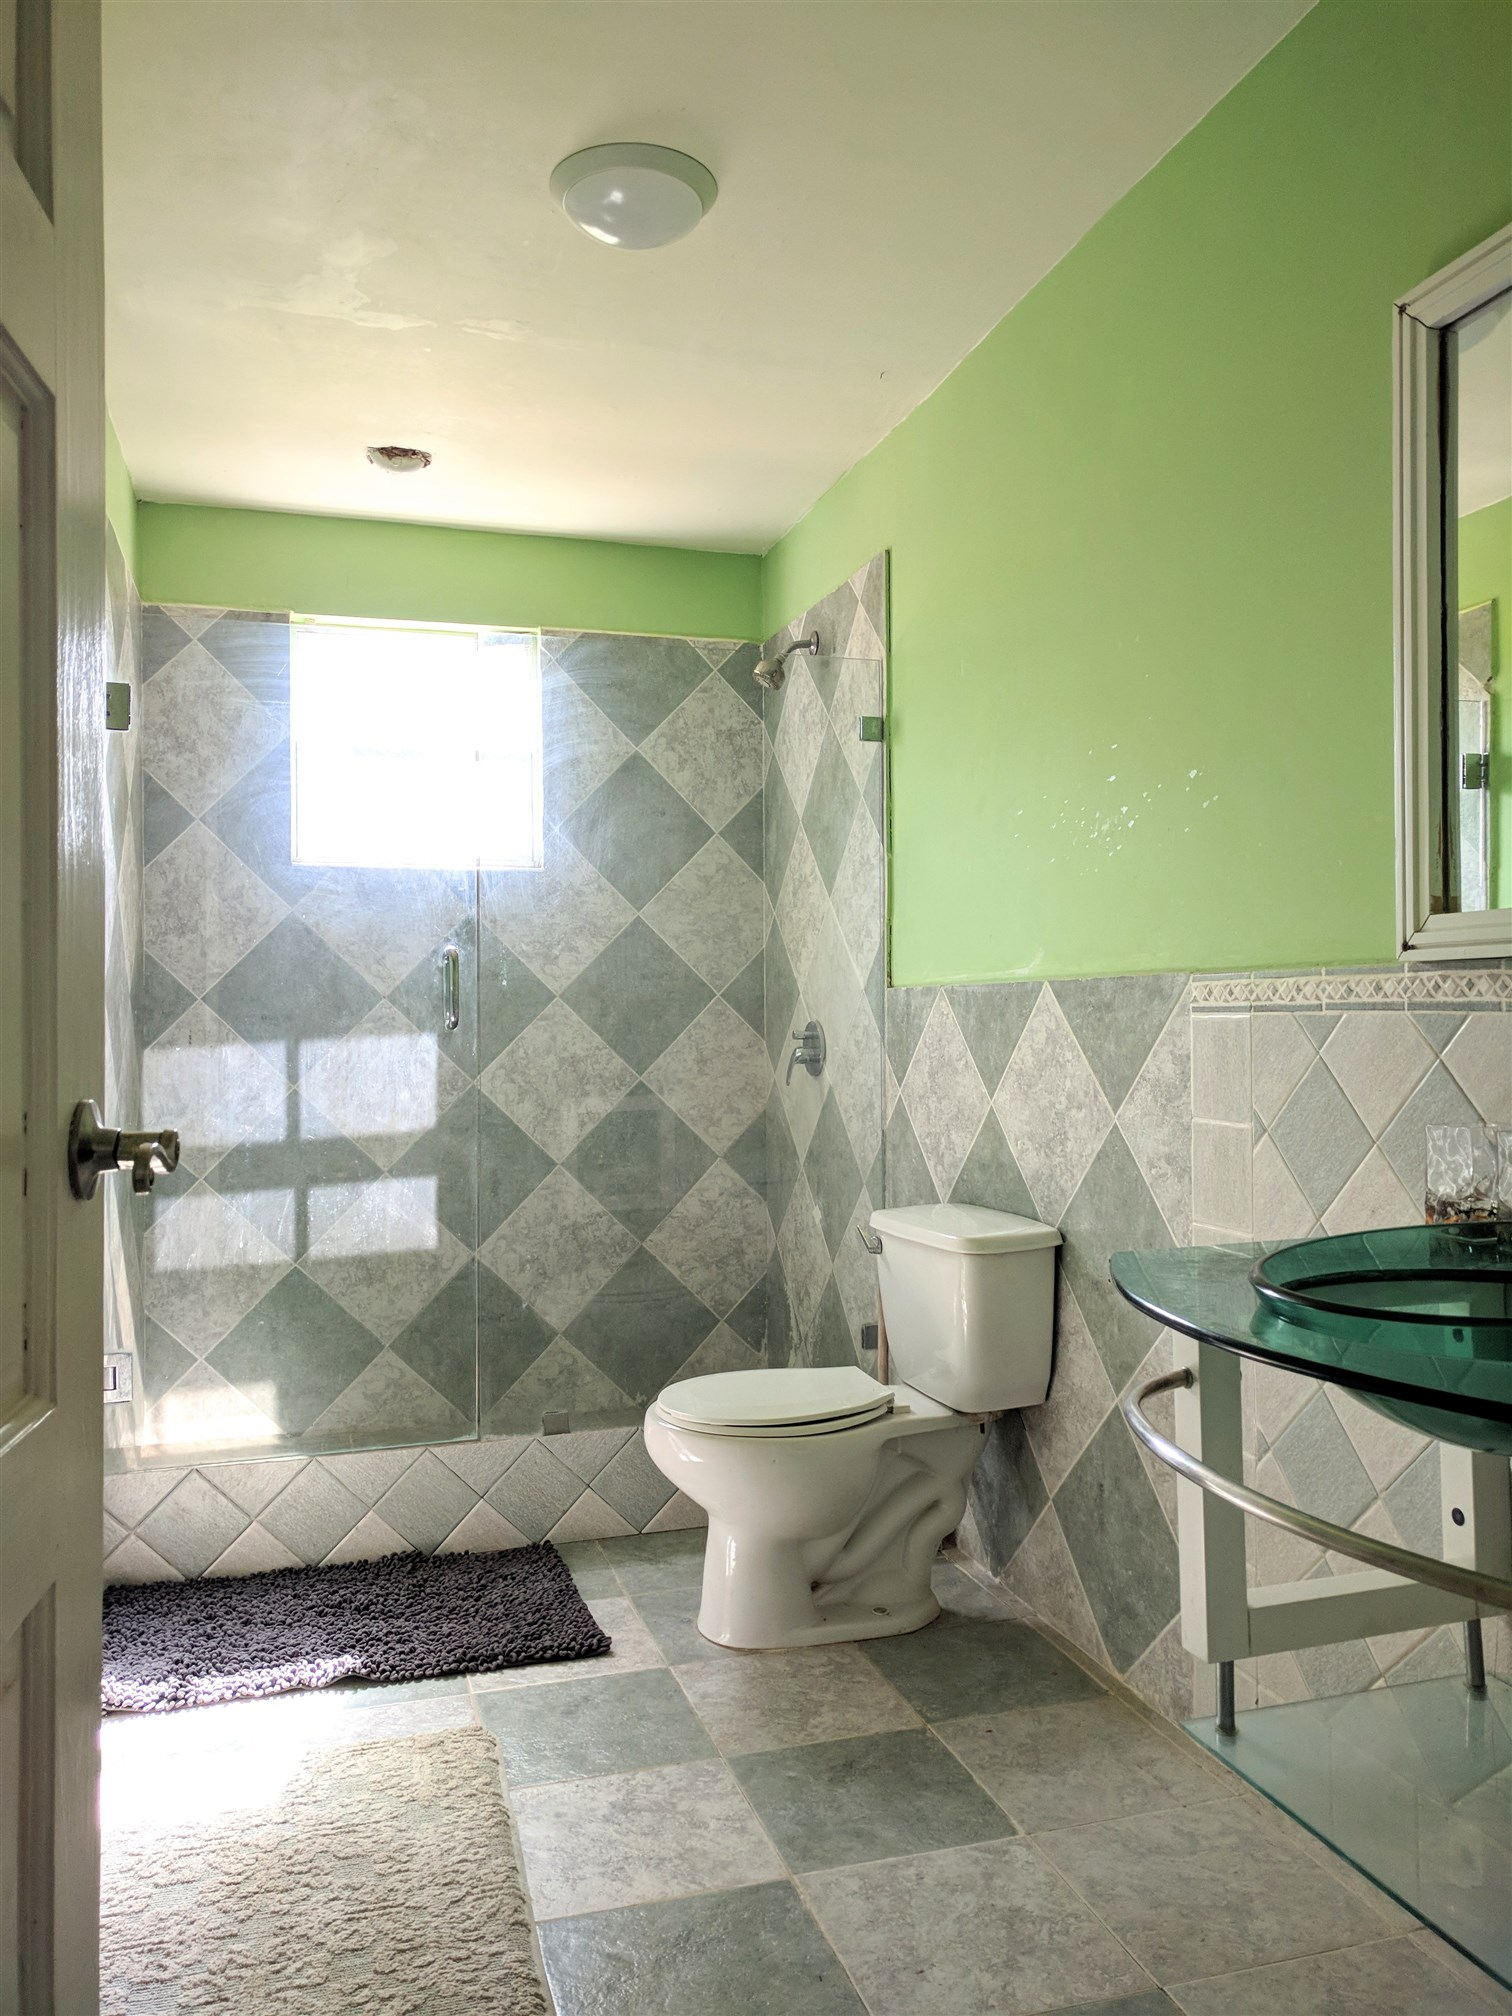 Bathroom, Mount Tabour, St. John